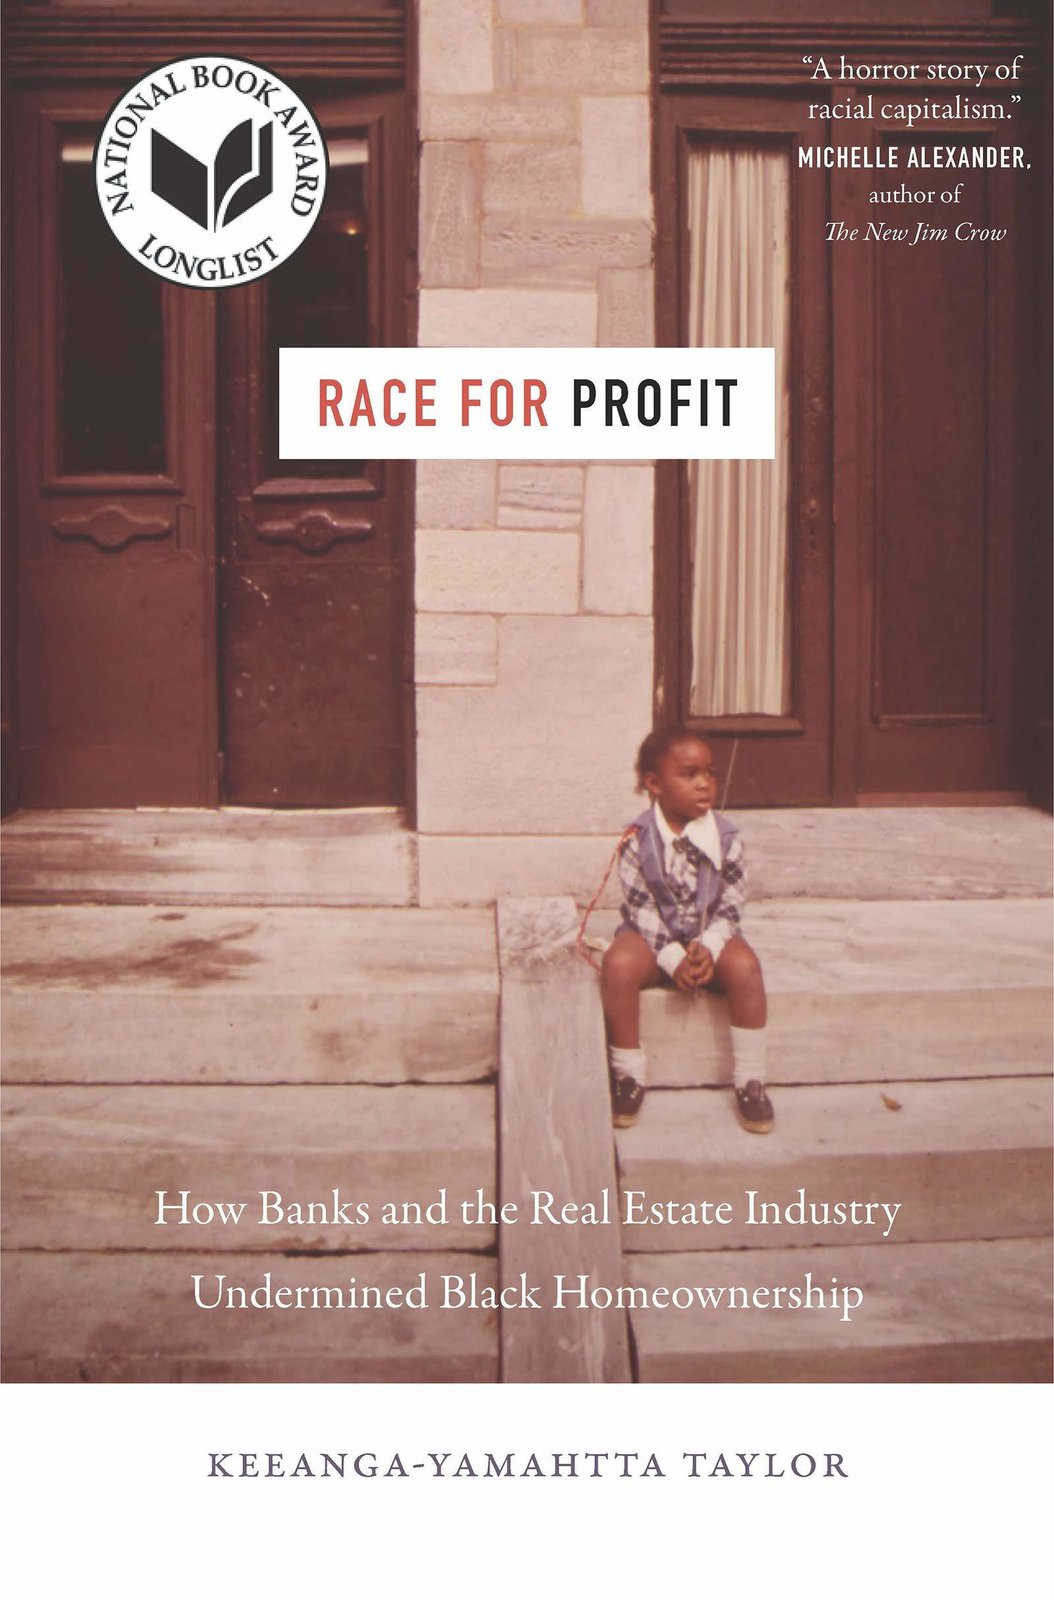 Photo 3 of 6 in How Blockbusting and Real Estate Profiteers Cash In on Racial Tension